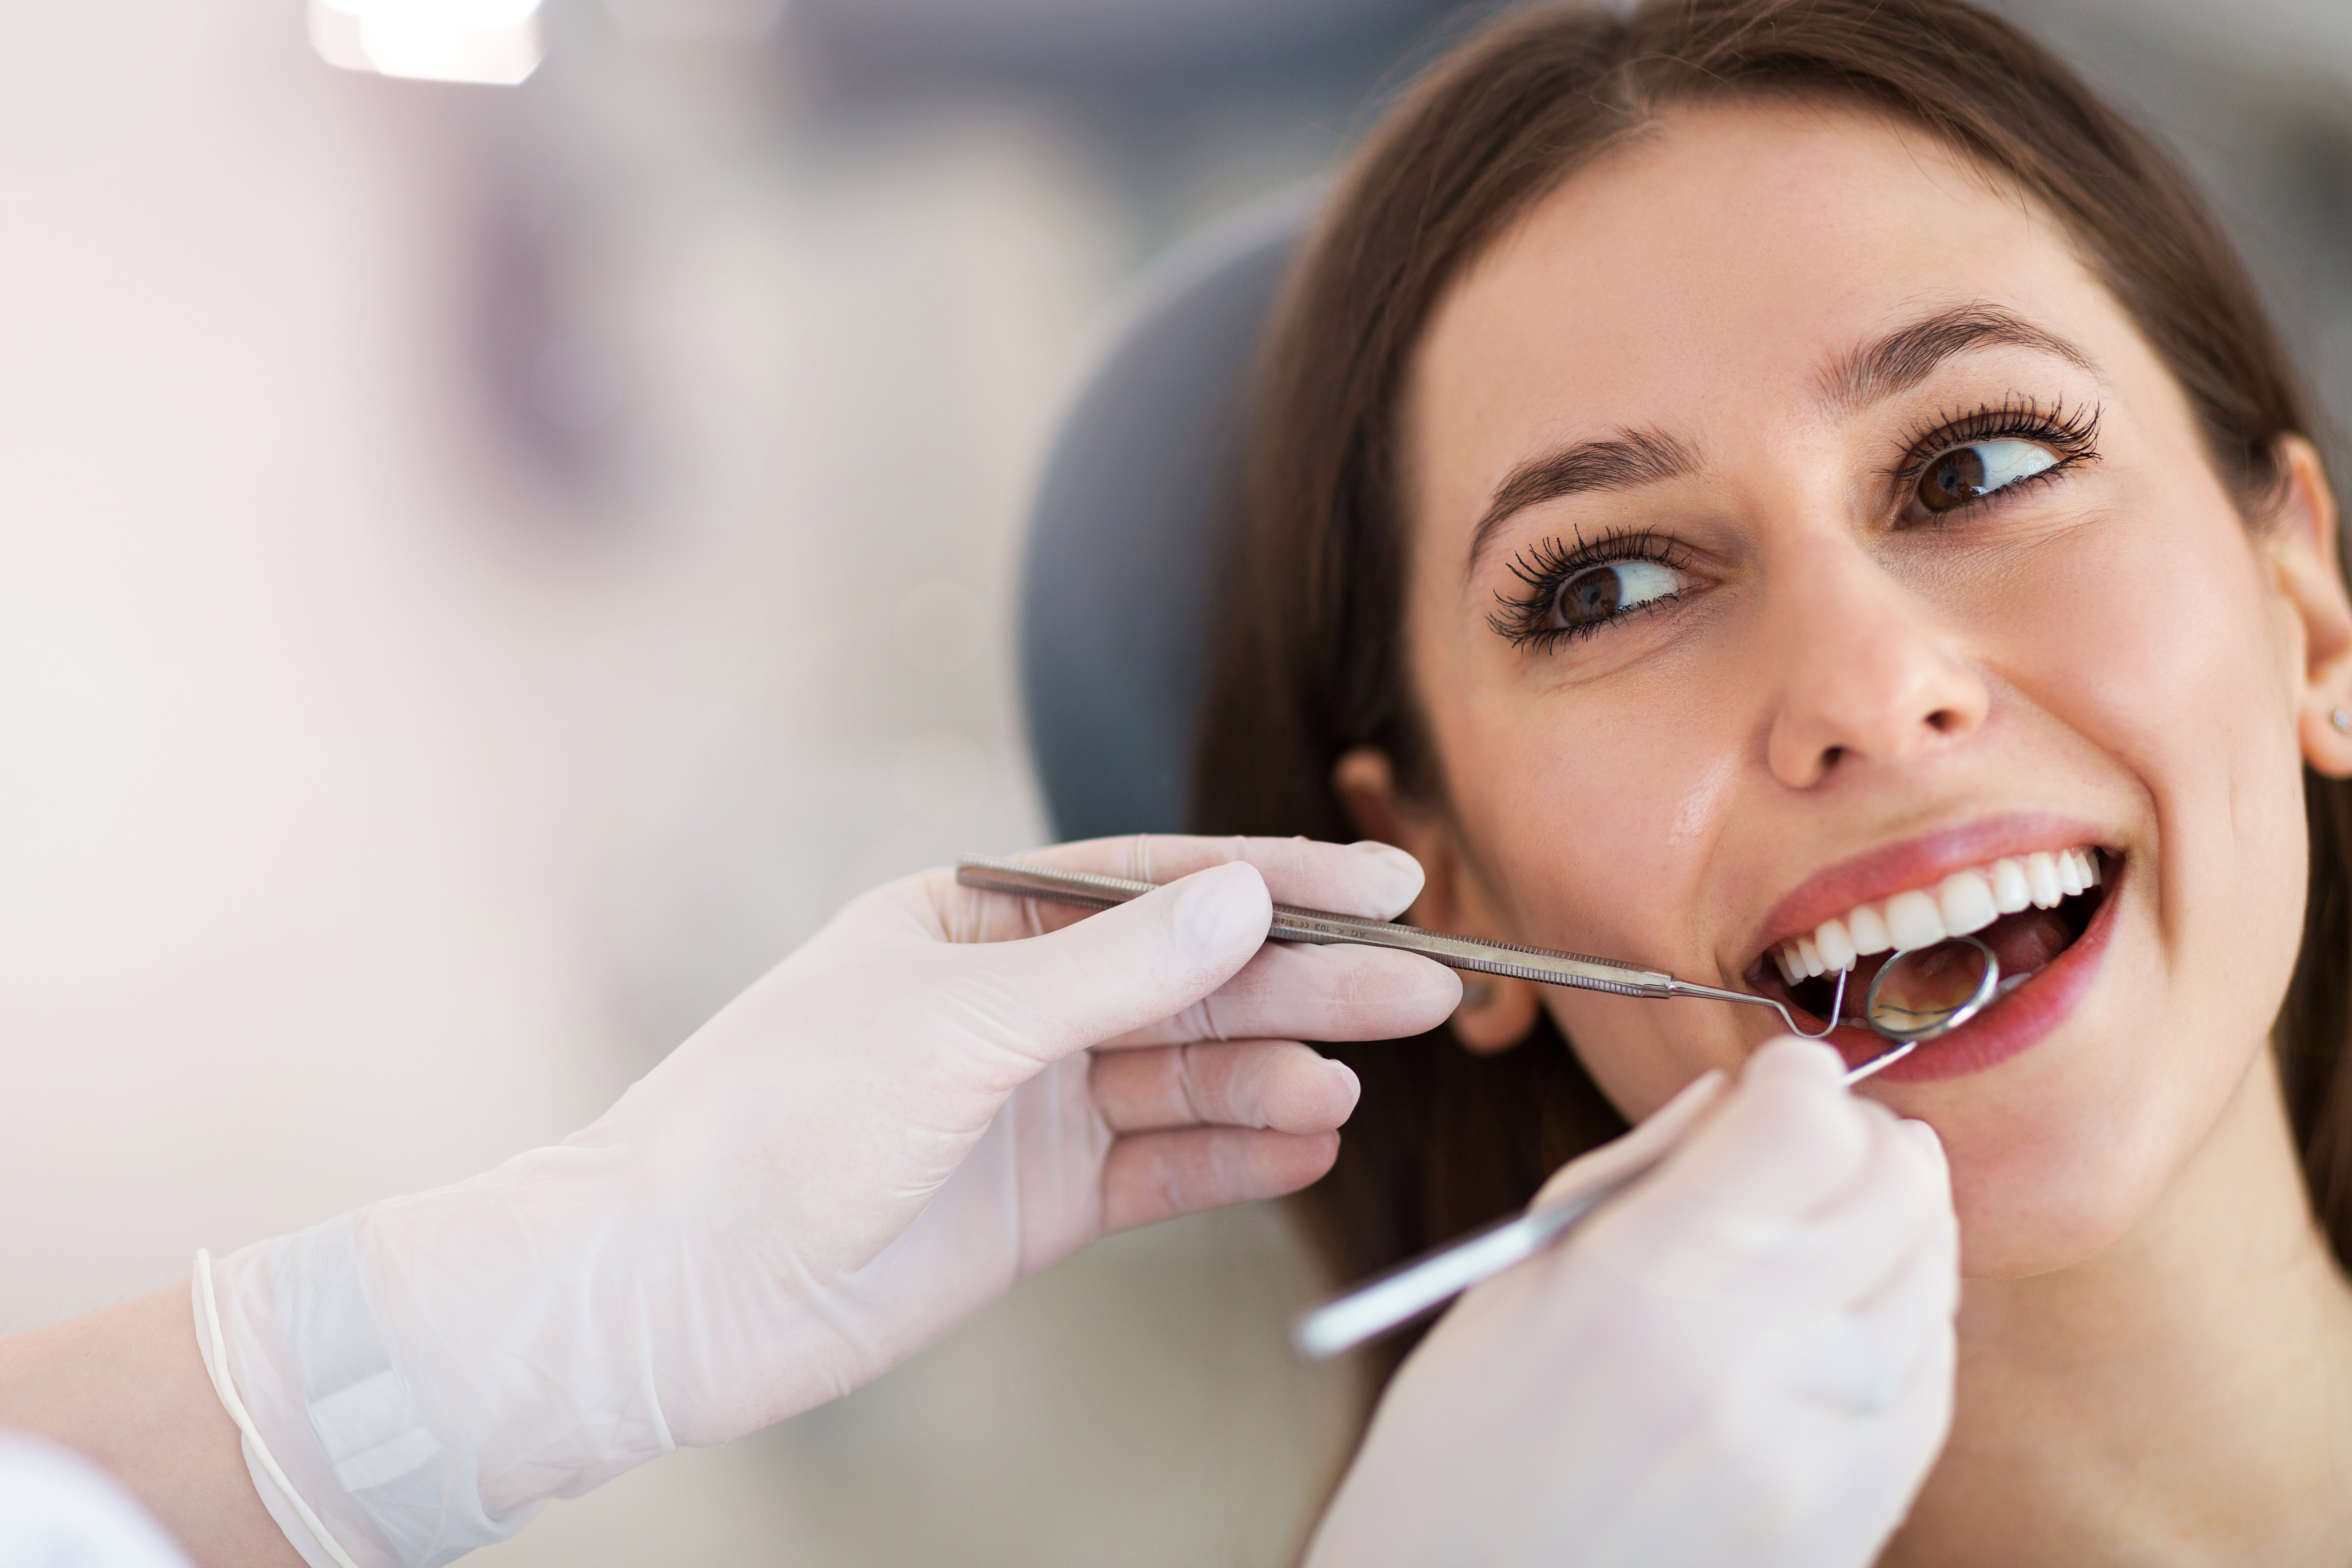 Woman in dental chair at dentist.jpg